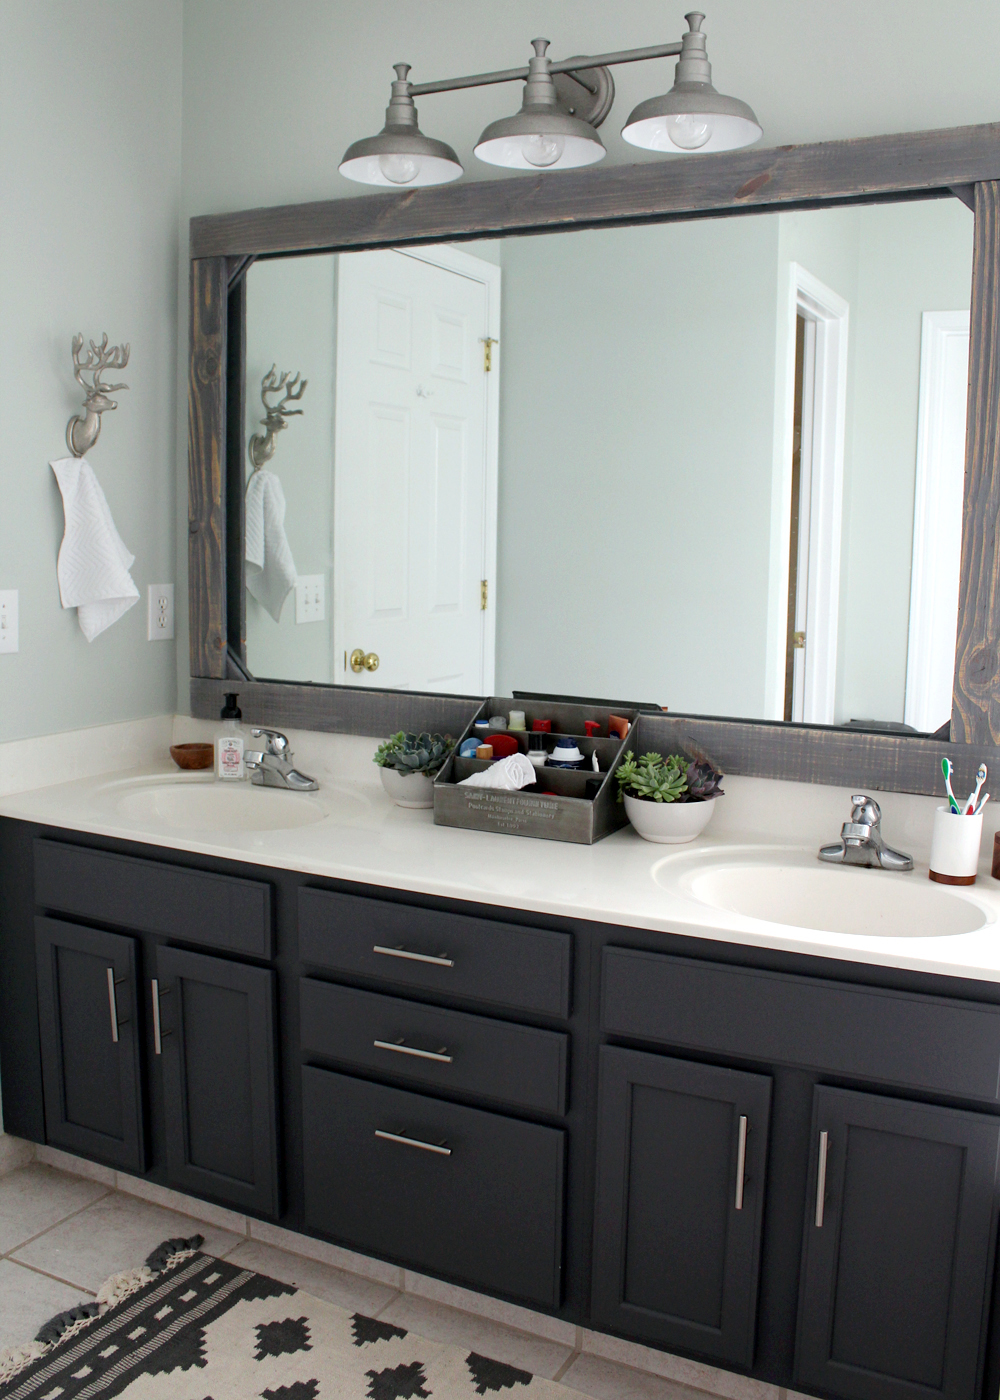 tips for updating a dated master bathroom on a budget